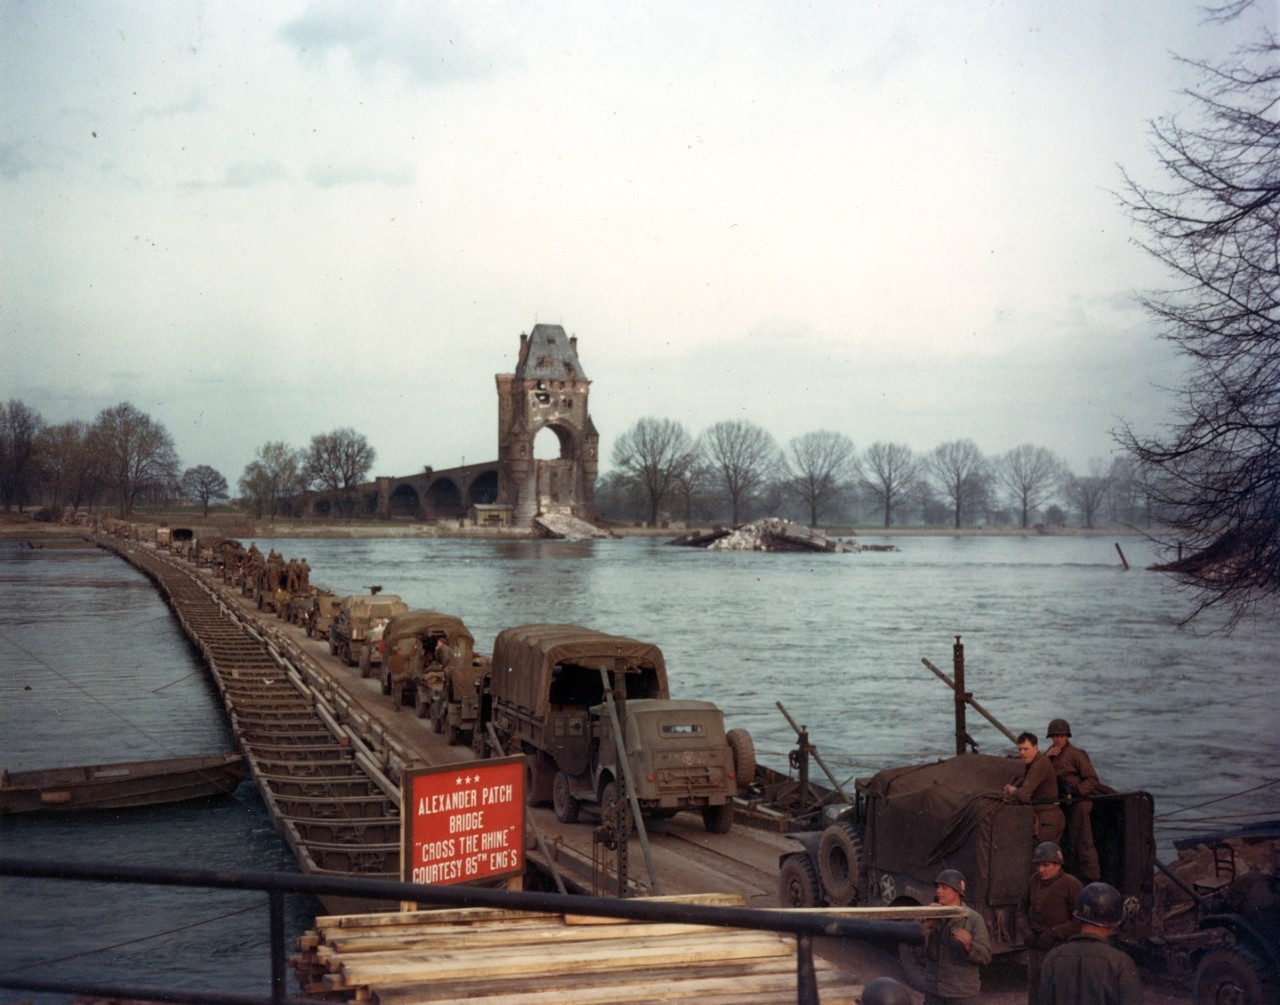 US Army mechanized forces cross the Rhine River on the Alexander Patch Heavy Pontoon Bridge, 28 March 1945. The bridge, built by the 85th Engineers, replaces the ruined bridge at right, which was destroyed by the retreating German Army.